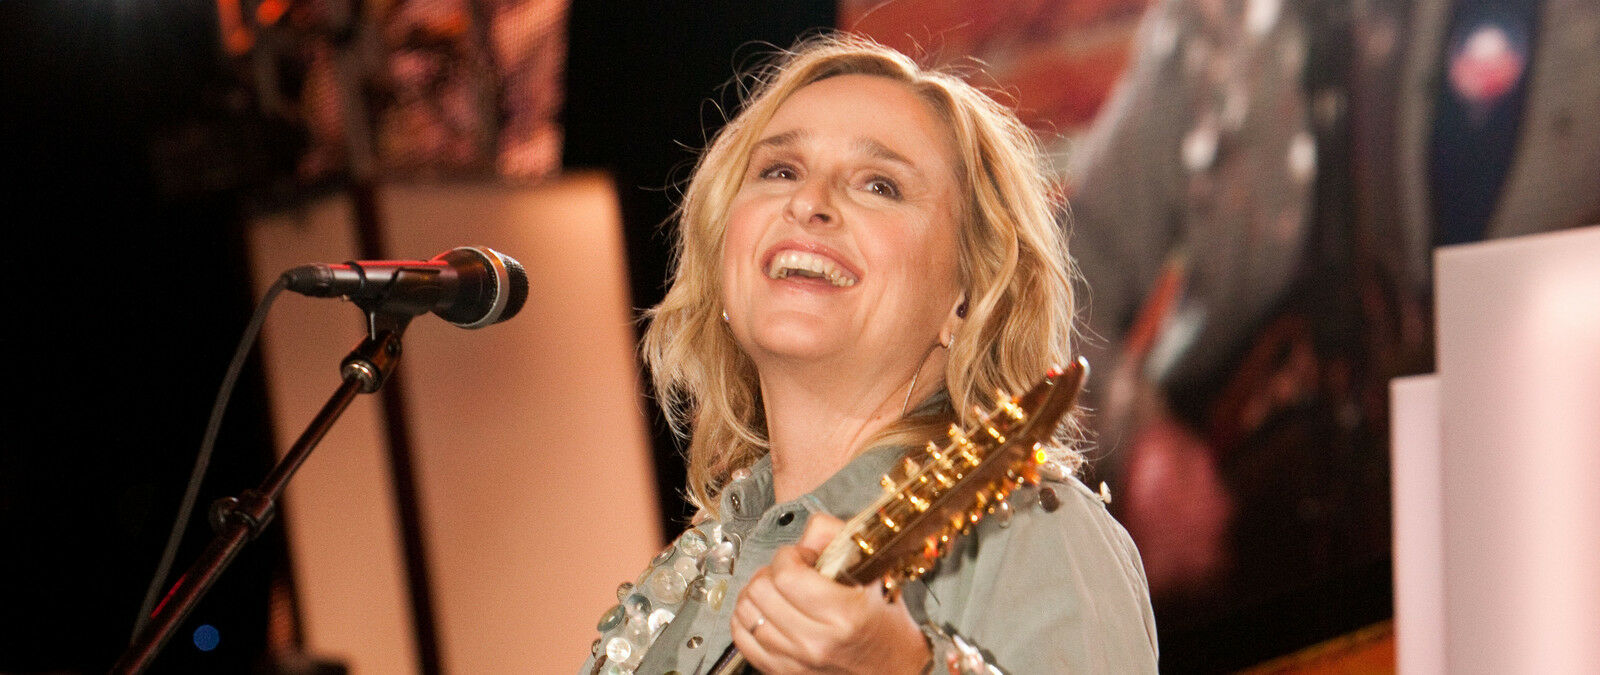 Melissa Etheridge: Merry Christmas, Baby